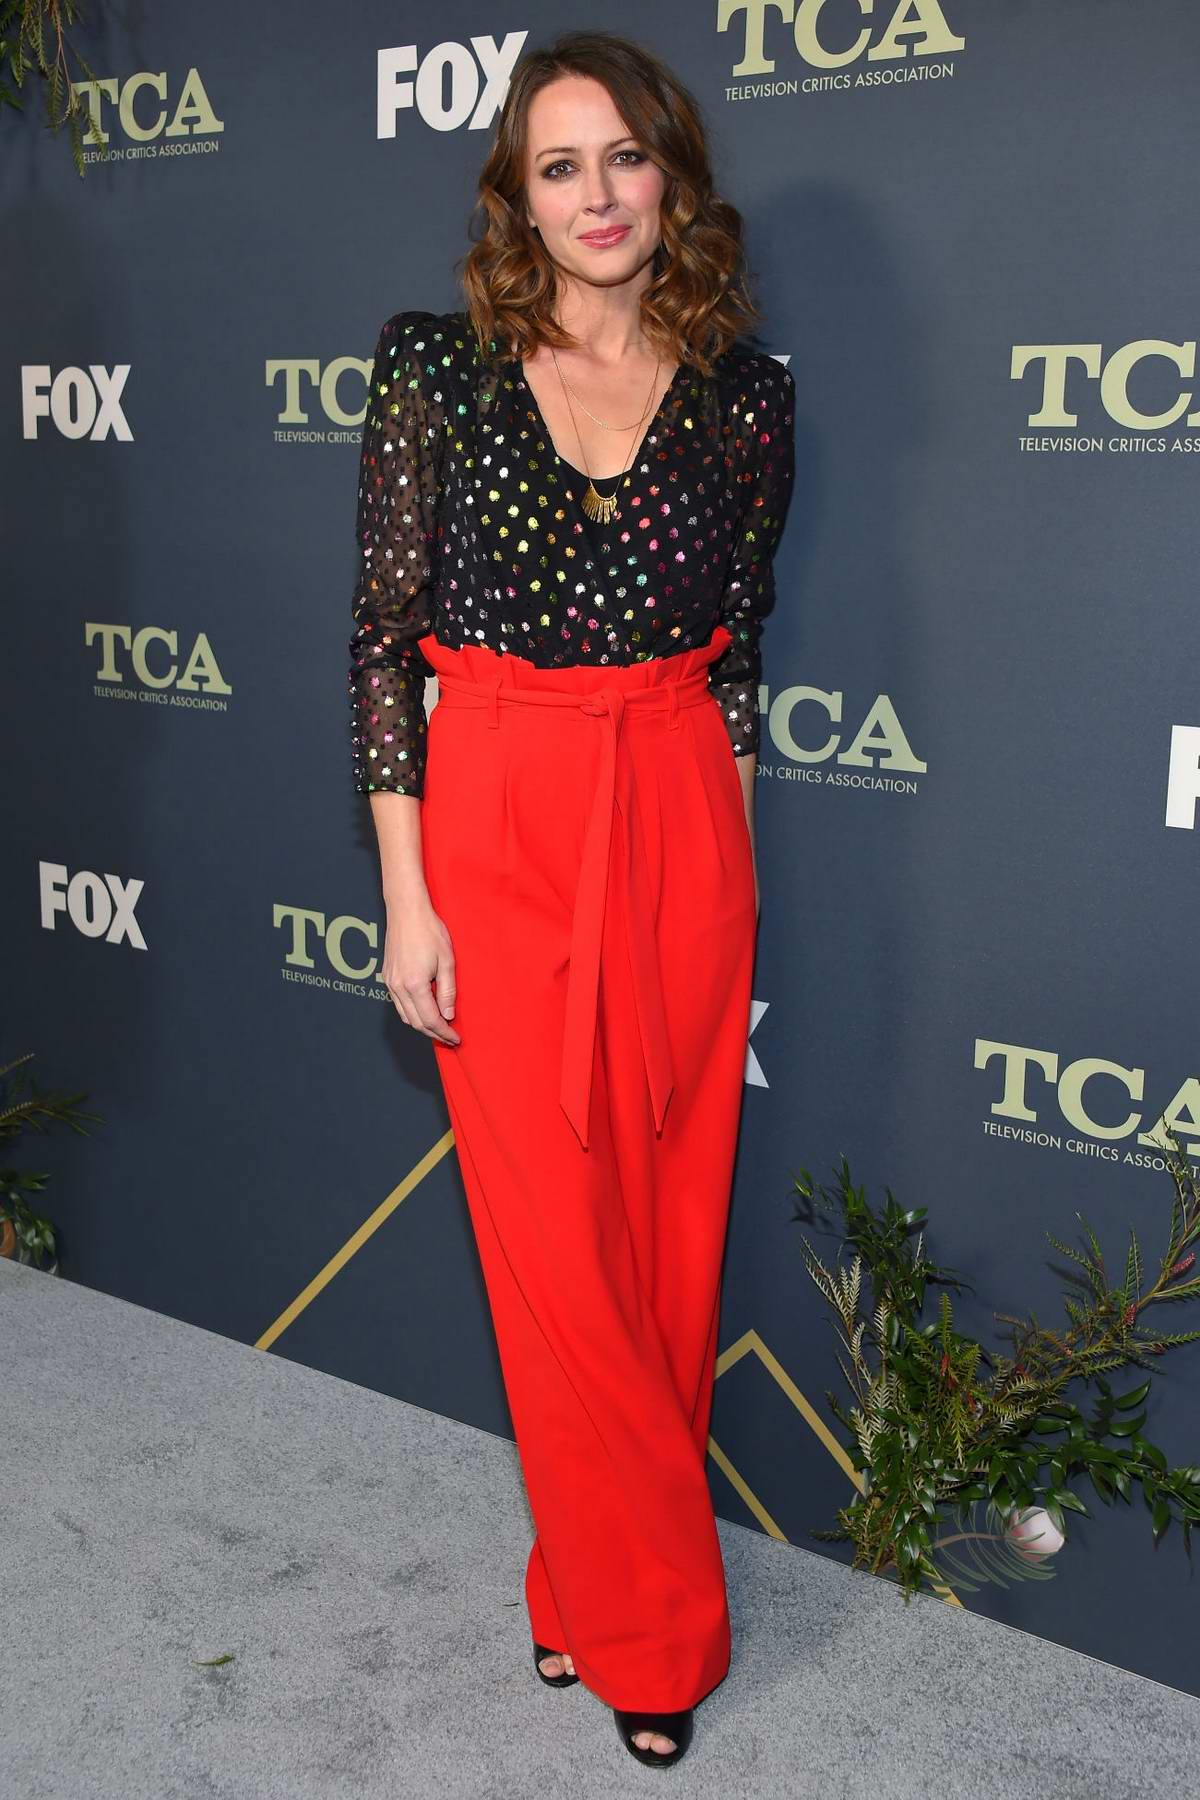 Amy Acker attends FOX Winter TCA 2019 All-Star Party in Los Angeles